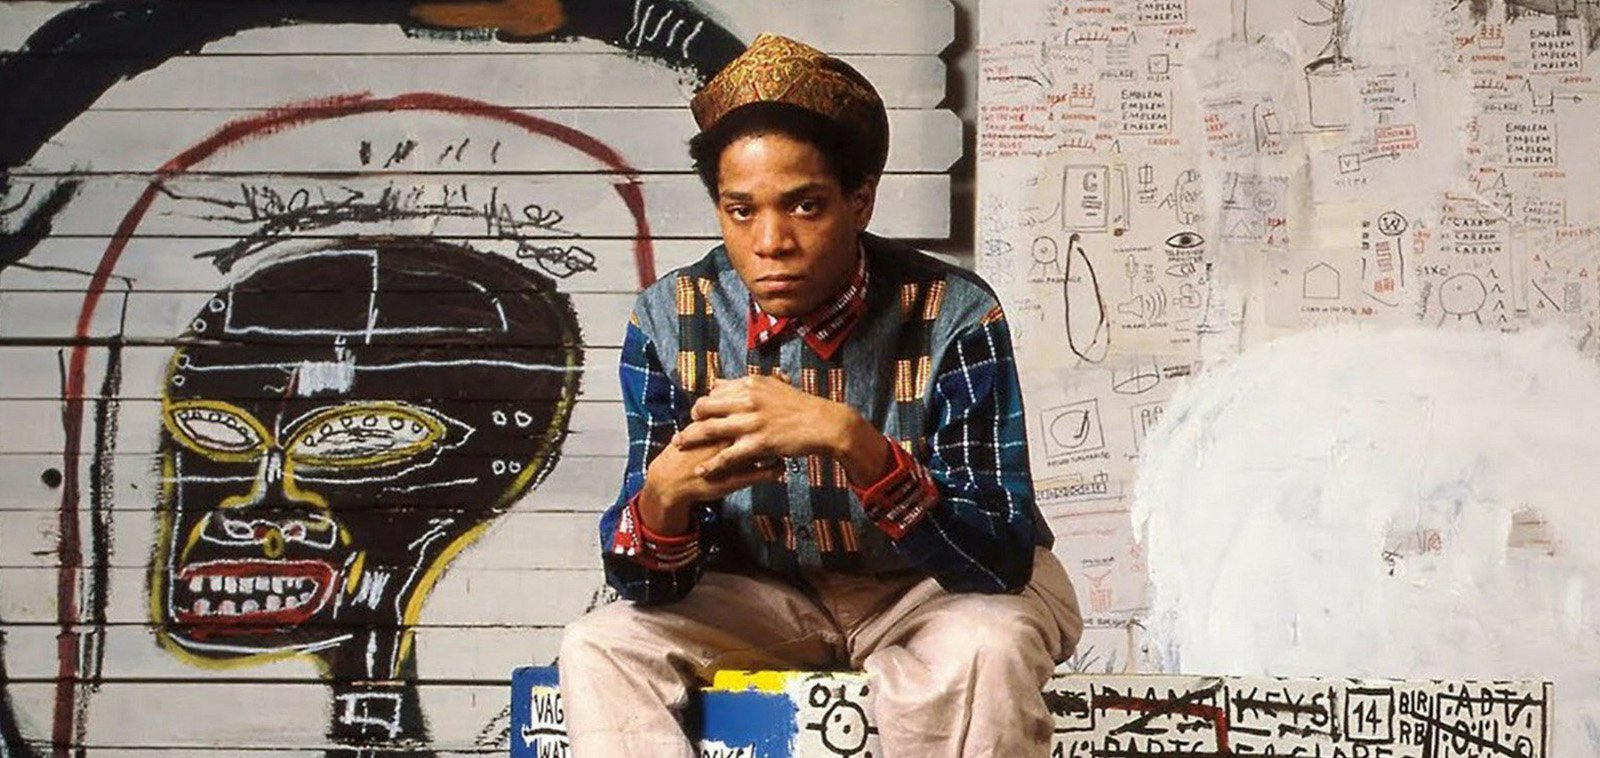 Boom for Real - The Late Teenage Years of Jean-Michel Basquiat - Cinema 3